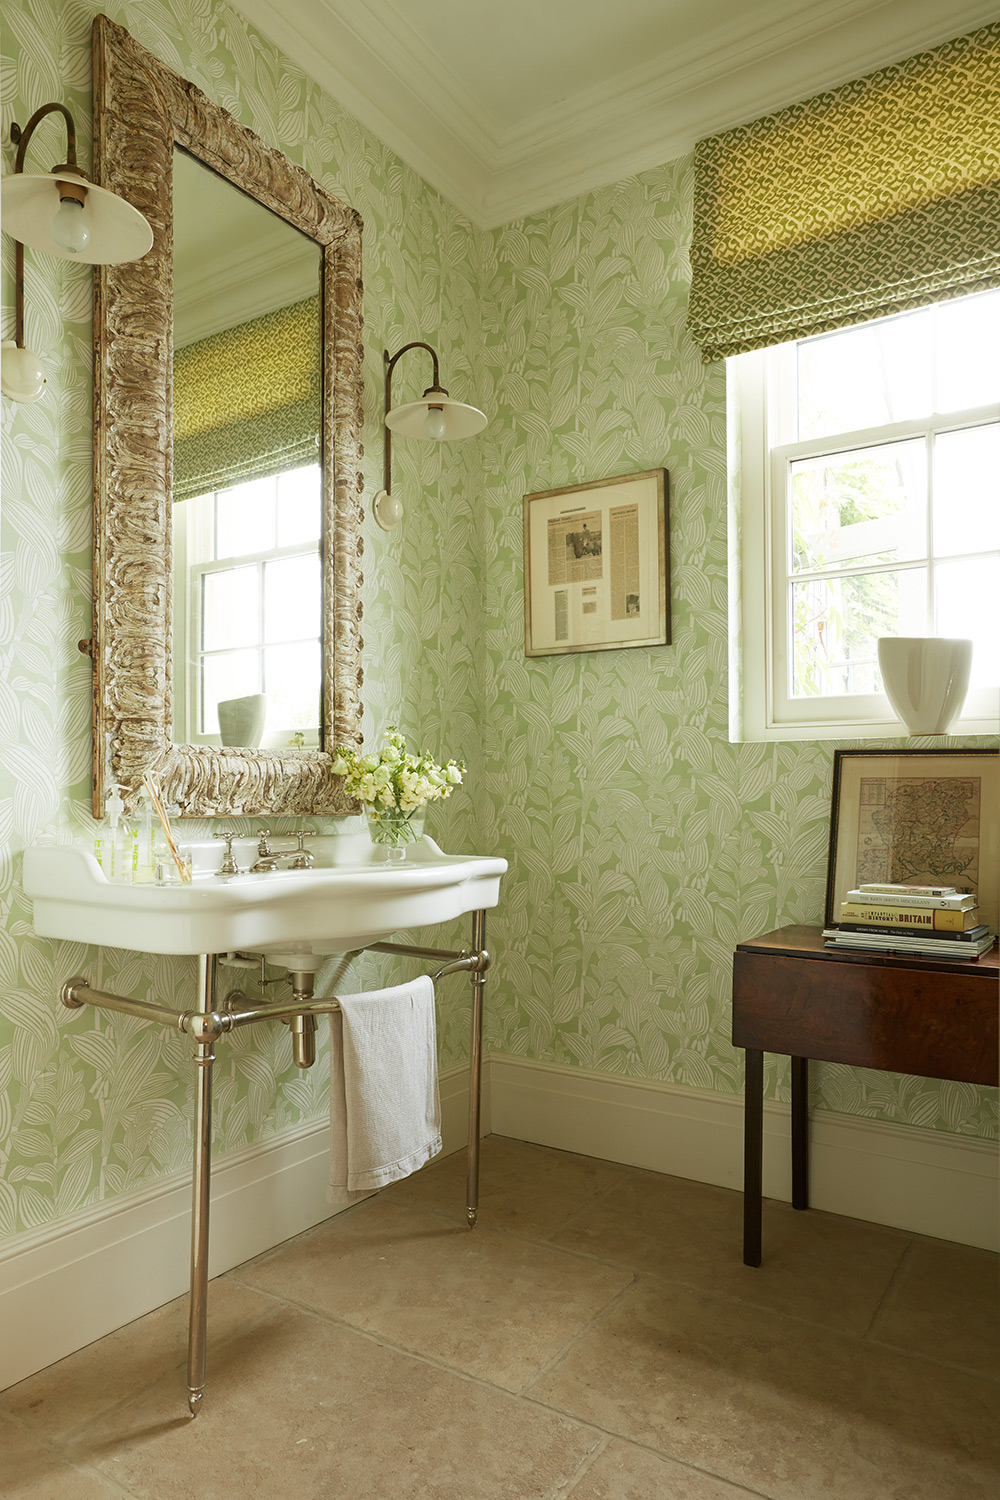 Green cloakroom – interior design by Eadie & Crole